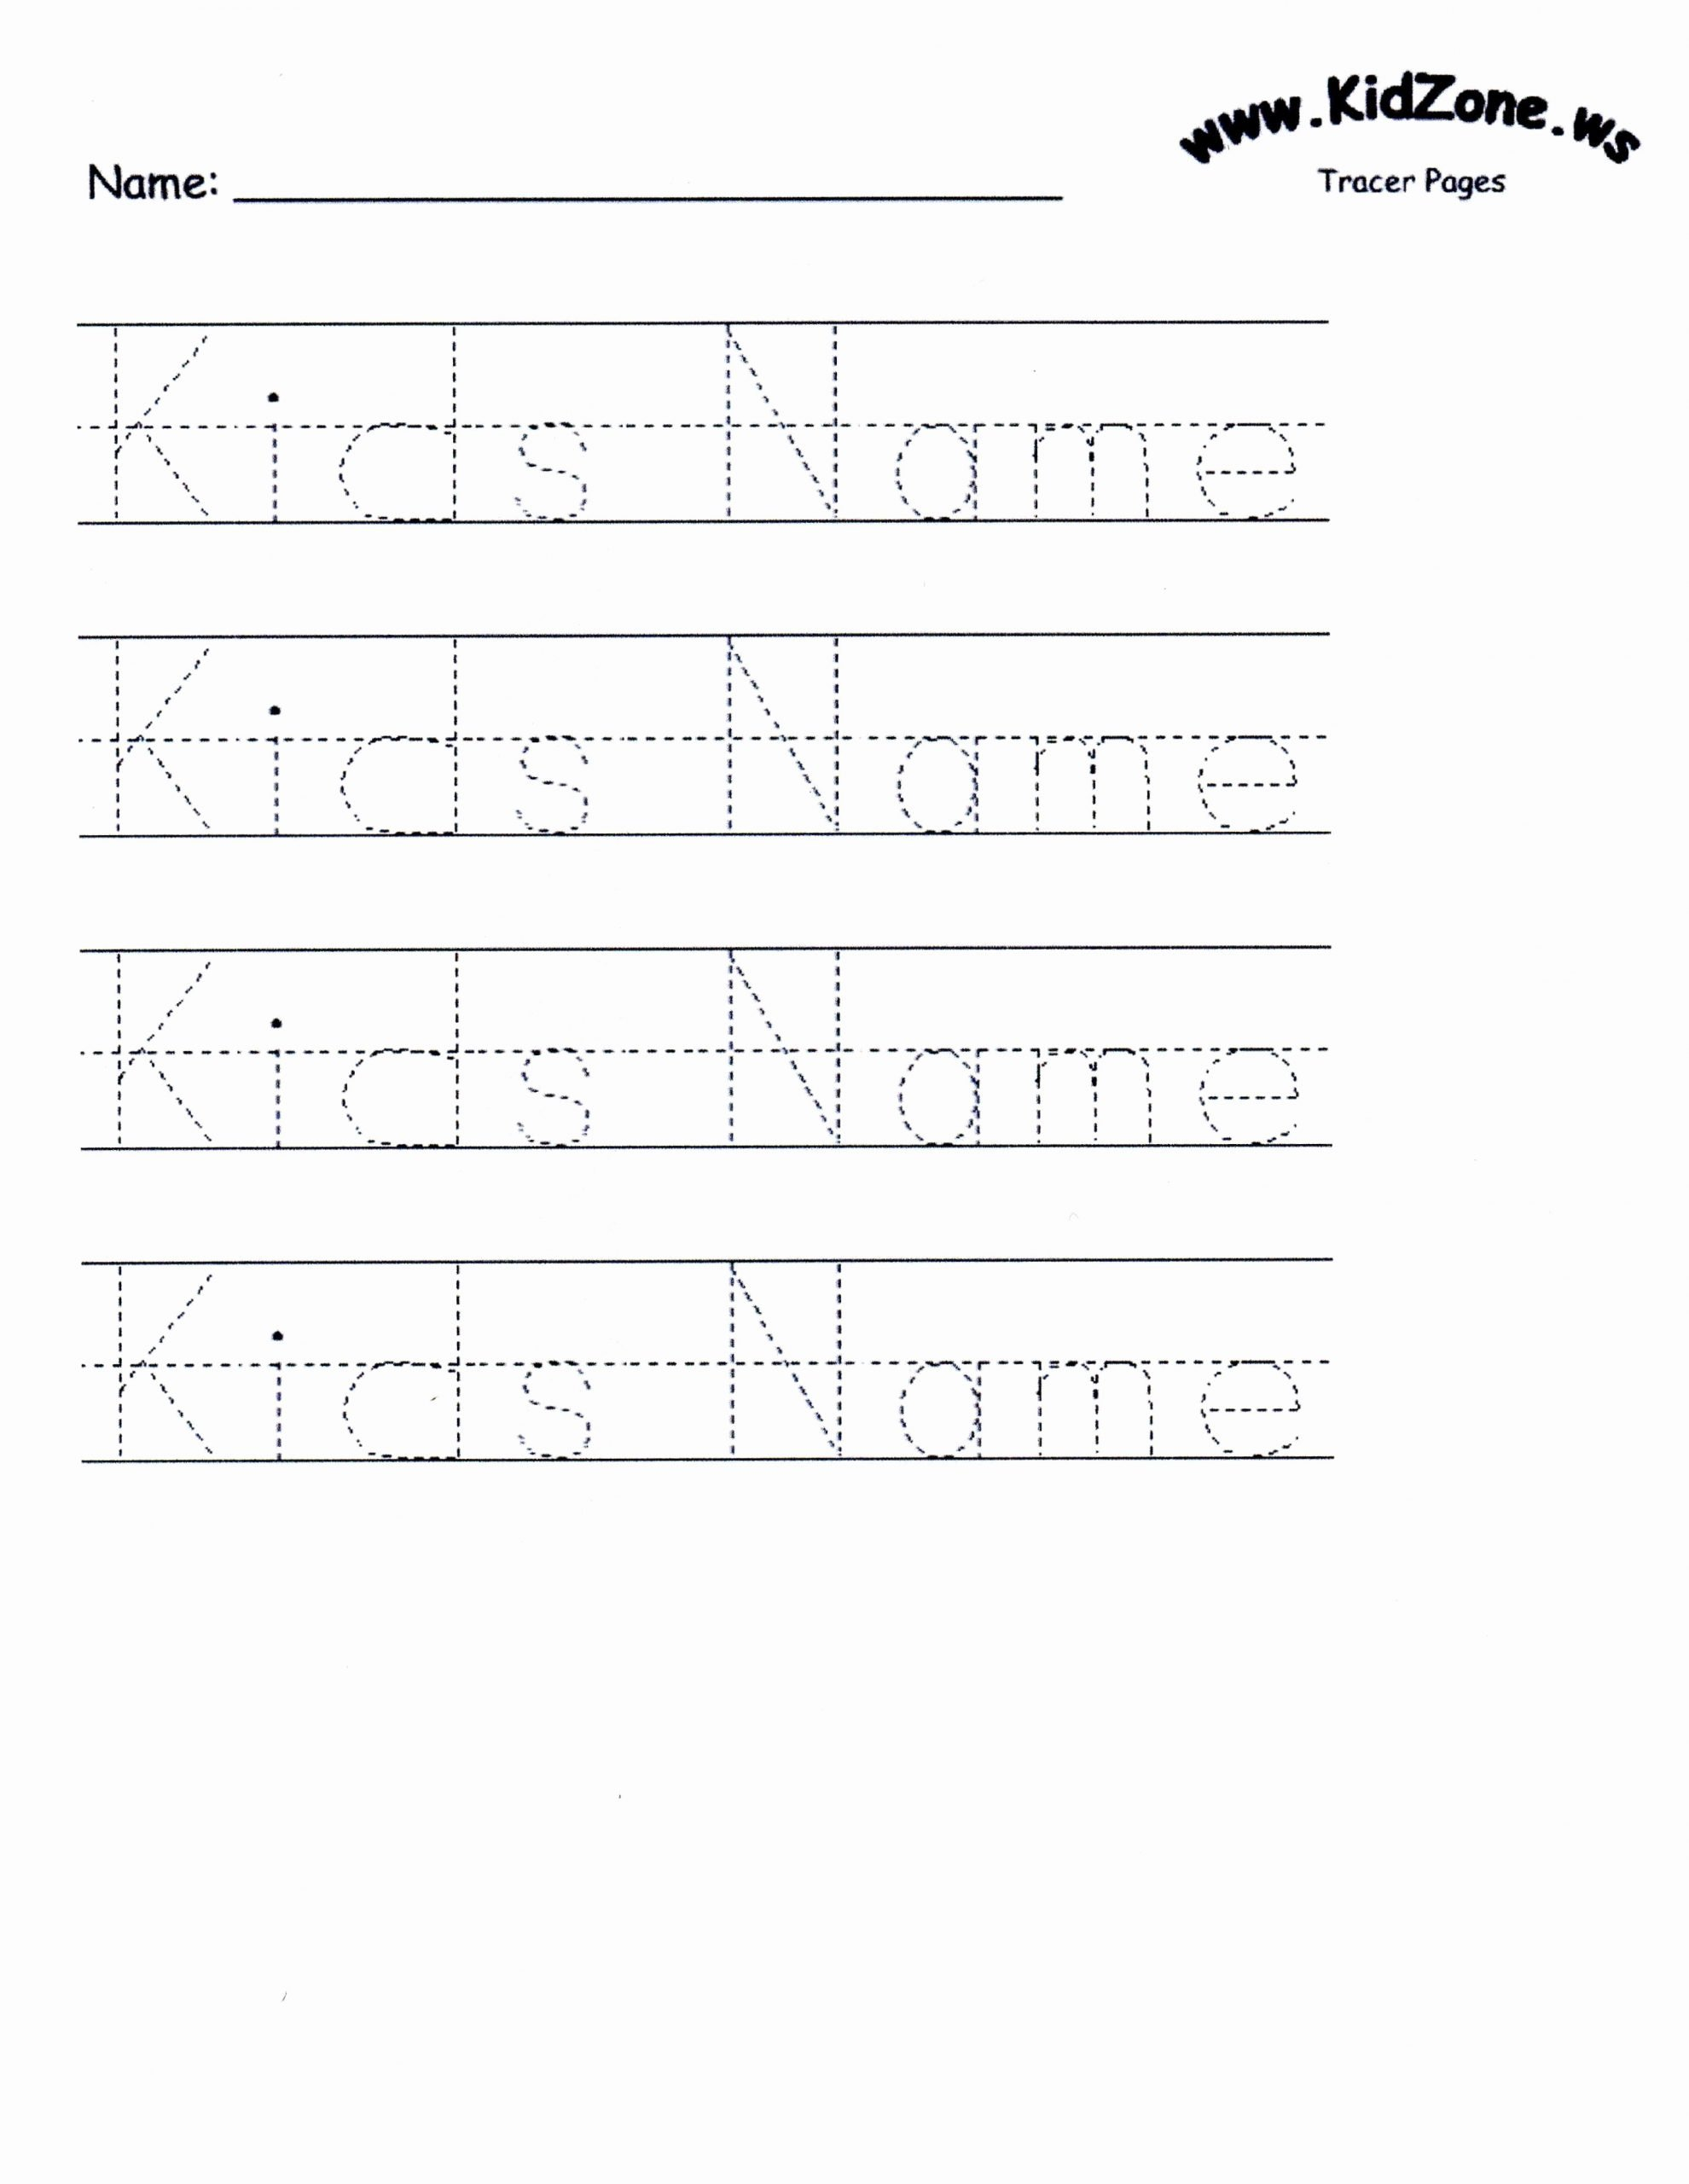 Writing Name Worksheets for Preschoolers Fresh Custom Tracer Pages